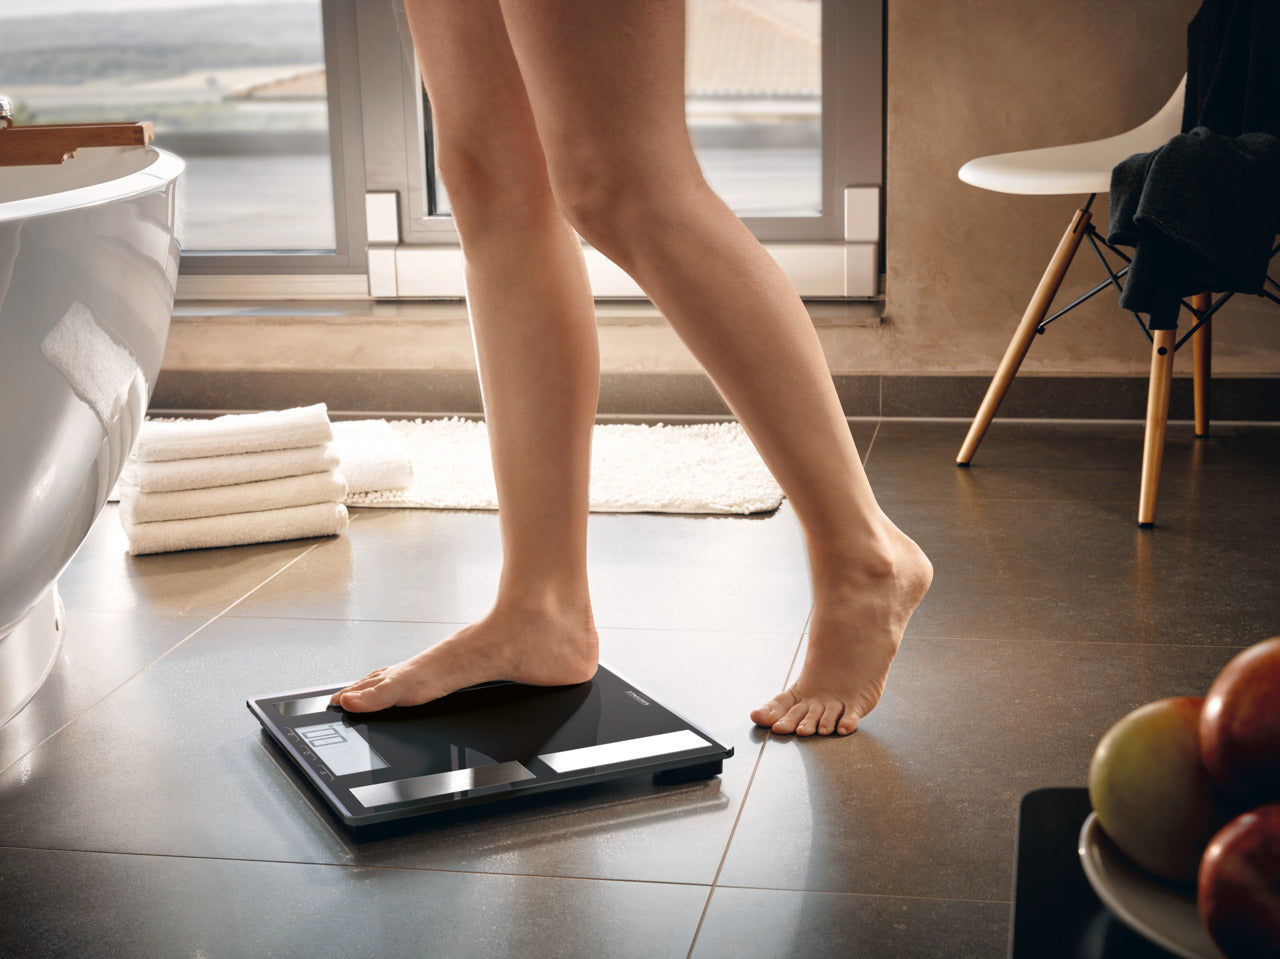 Soehnle Shape Sense Connect 50 with Bluetooth® Bathroom Scale 180kg Capacity S63879